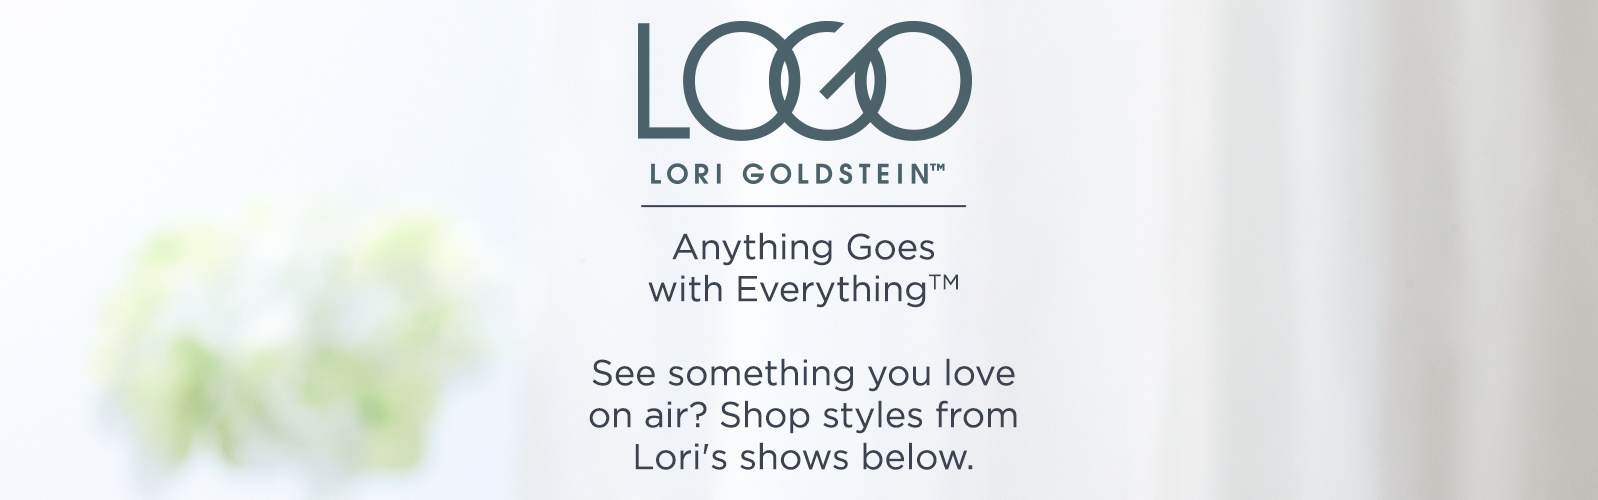 LOGO   Anything Goes with Everything™ See something you love on air? Shop styles from Lori's shows below.